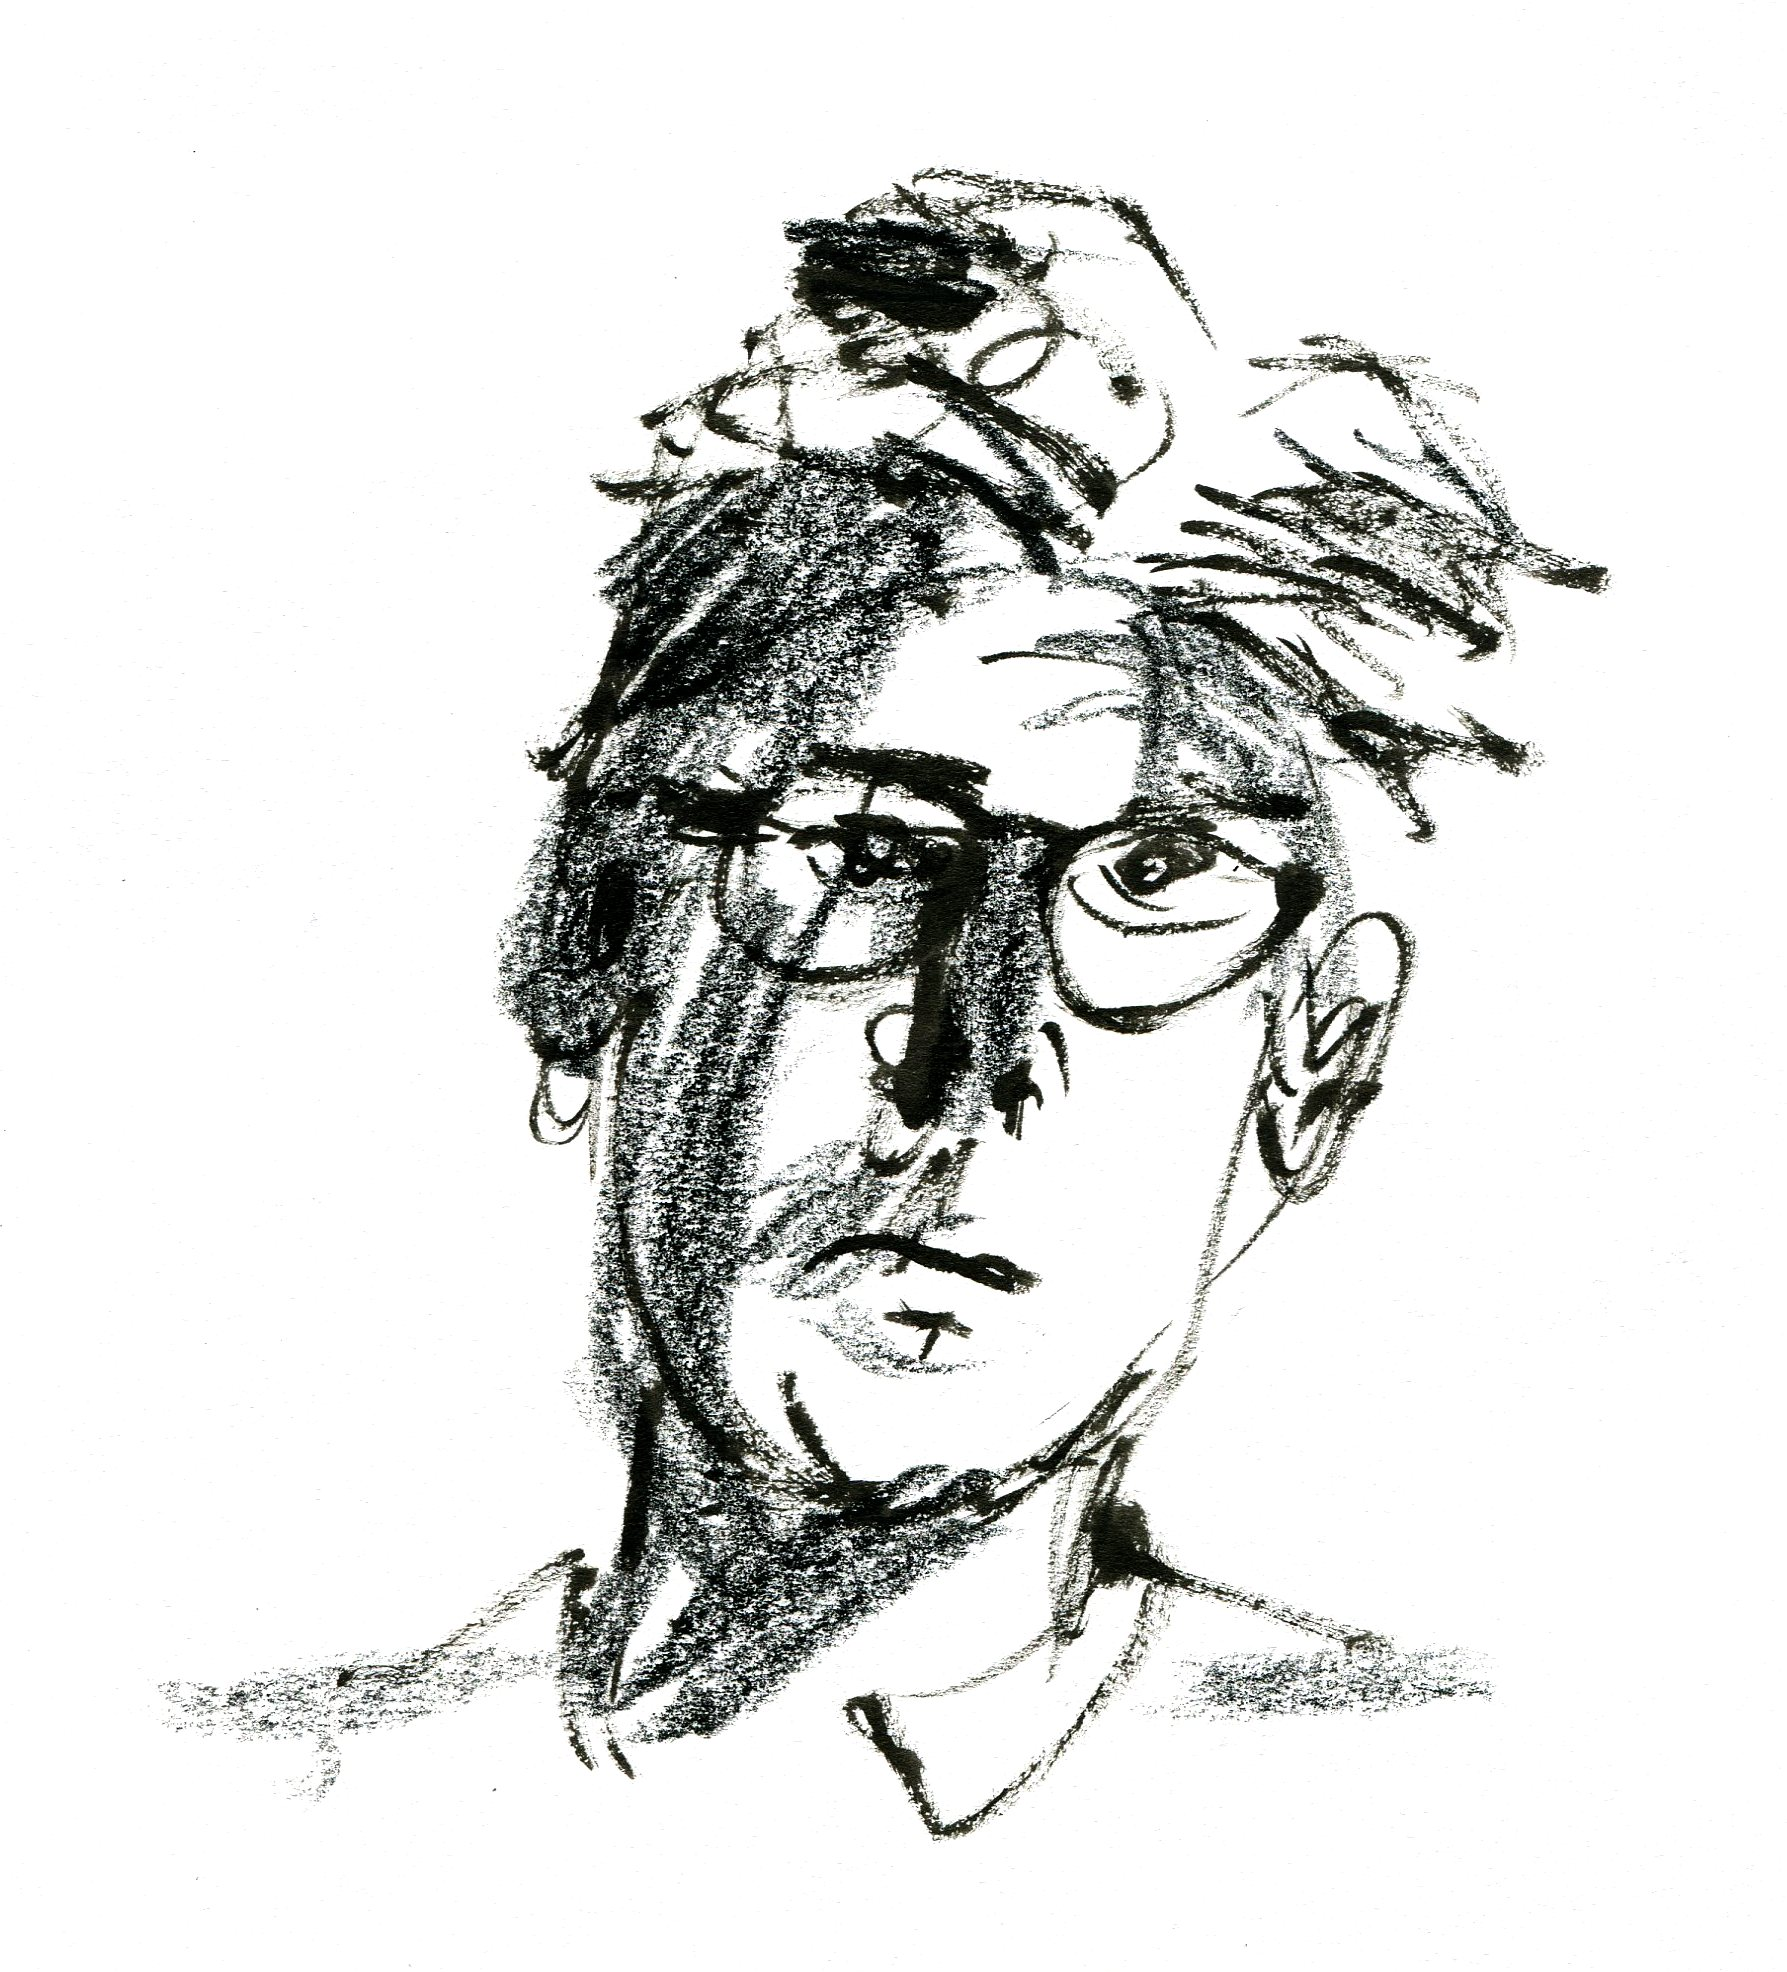 "Bill Jones - I am a freelance illustrator, writer, cartoonist and performer based in Gloucestershire, UK.My cartoons have appeared in Private Eye and my first book, The Life and Times of Algernon Swift, an illustrated novel of puns, was published in 2017 by Head of Zeus.I have a particular interest in crows, historical costume, nature and gardens, puzzles and wordplay.If you would like me to do some illustration work, design a puzzle trail or perform my show ""Growing Victorians in Your Garden"" at your venue, please get in touch."